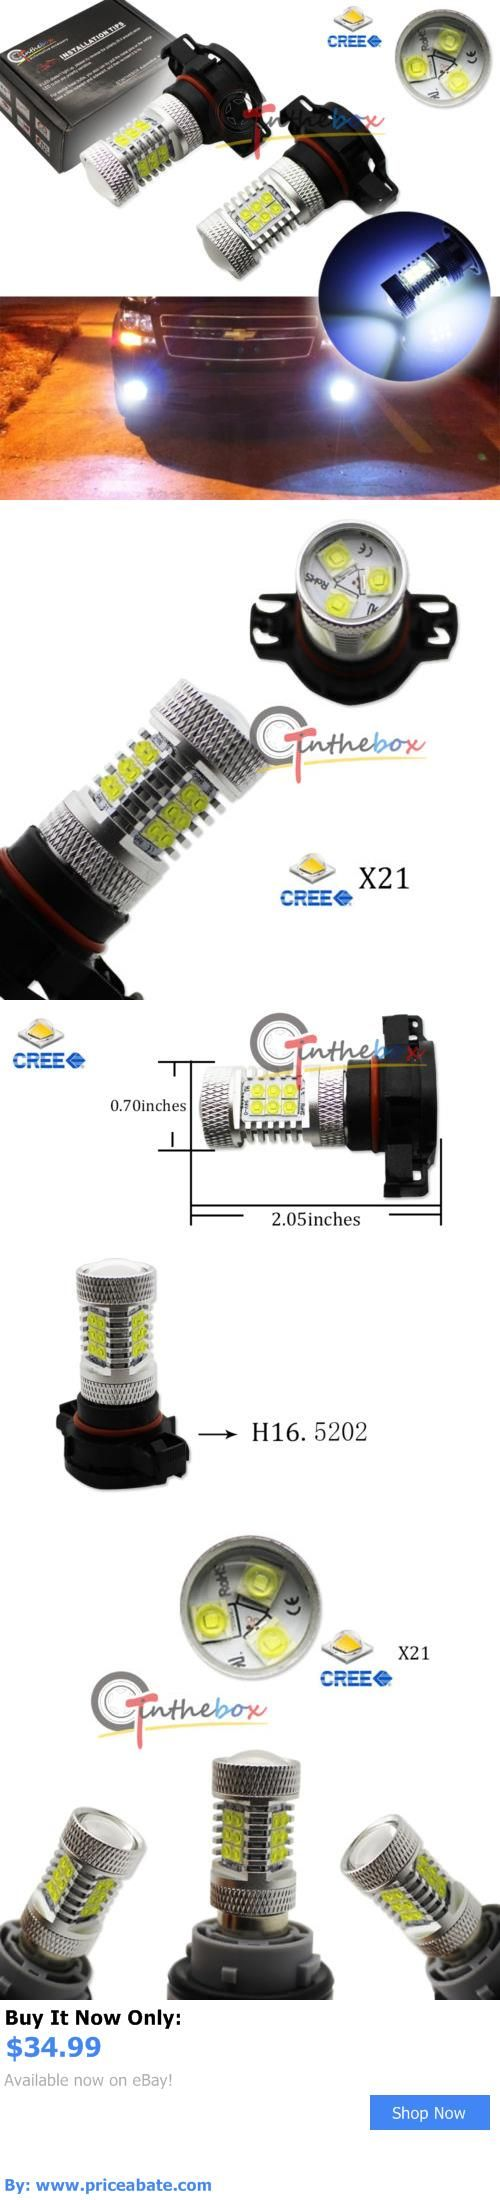 Motors Parts And Accessories: (2) 8K Blue 5202 H16 High Power 21-Cree Led Bulbs Fog Daytime Running Lights Drl BUY IT NOW ONLY: $34.99 #priceabateMotorsPartsAndAccessories OR #priceabate